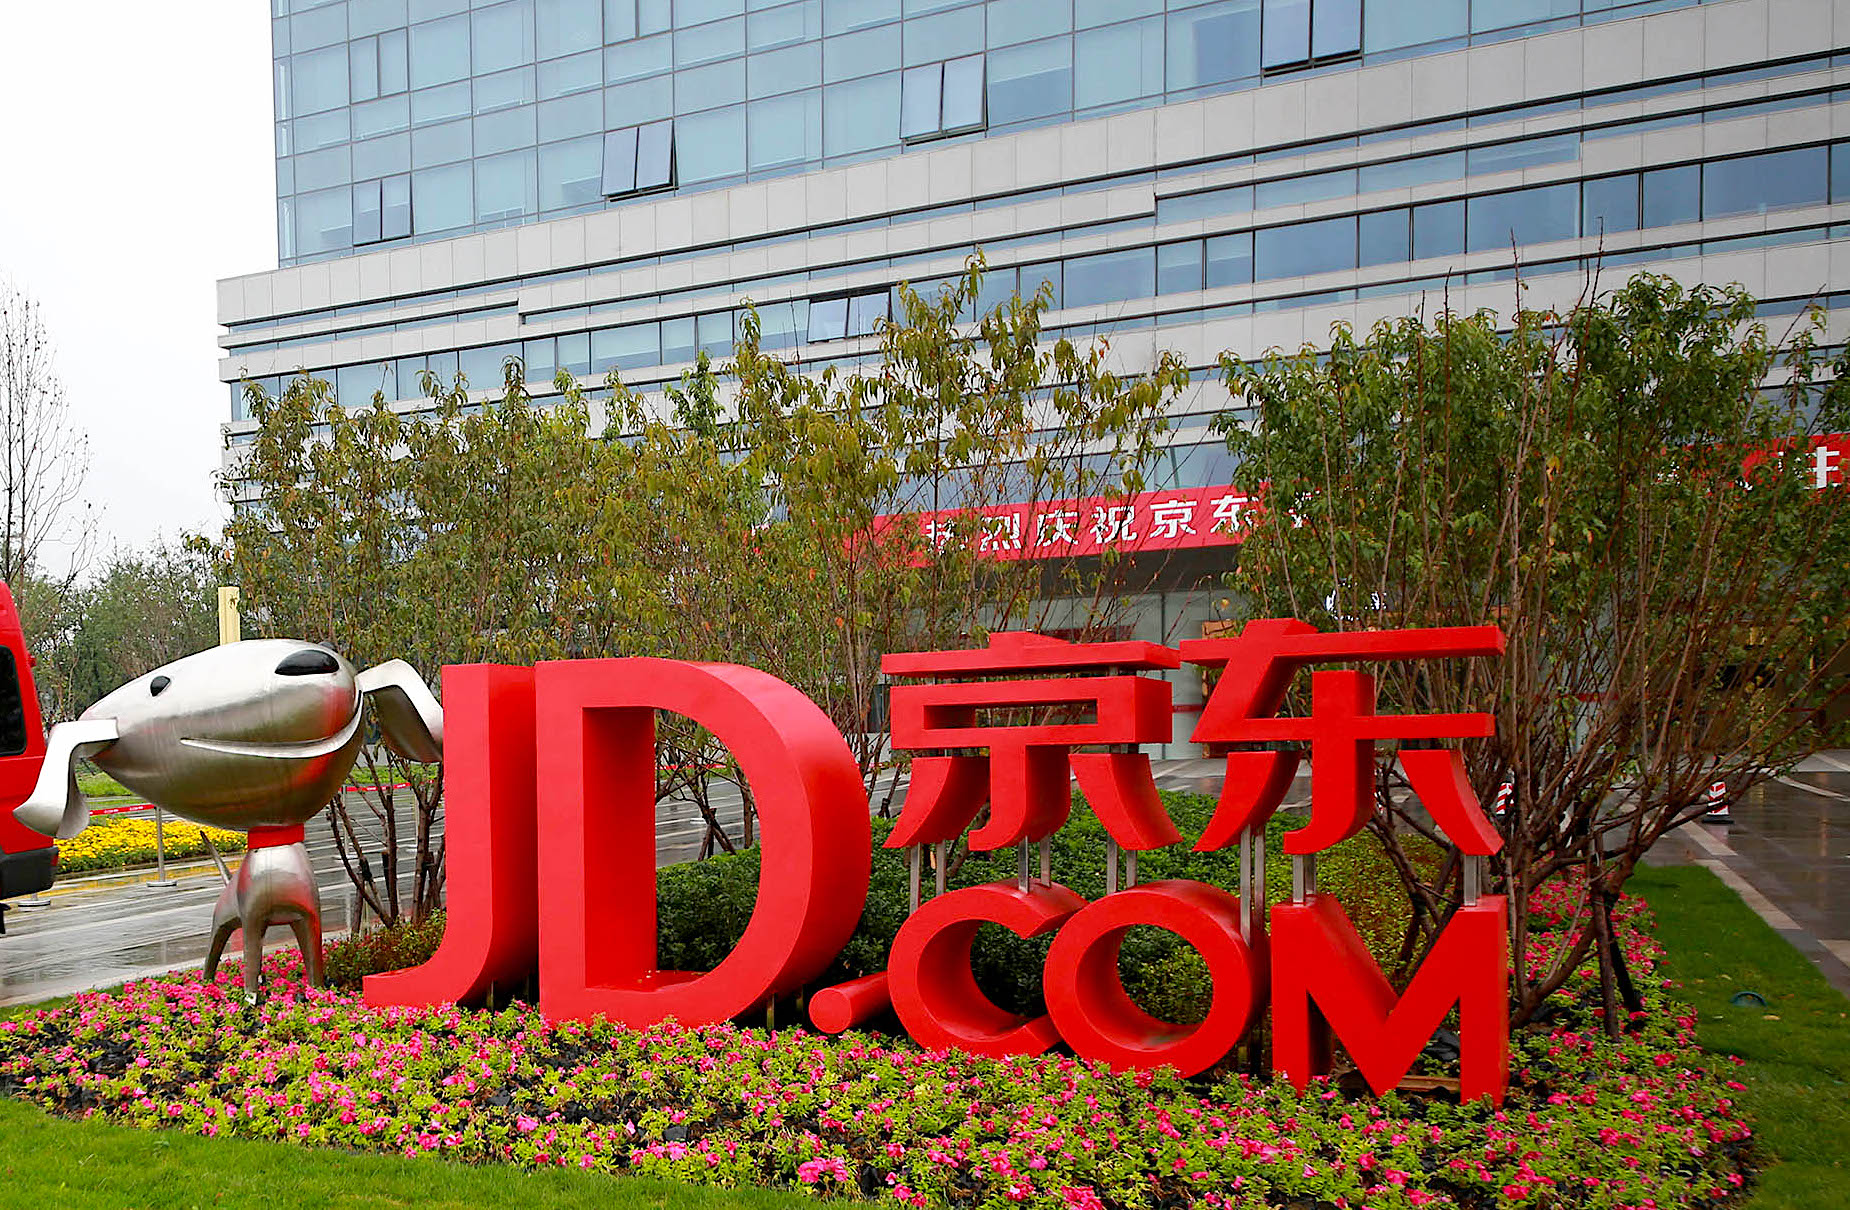 Google to invest $550 million in China's JD.com